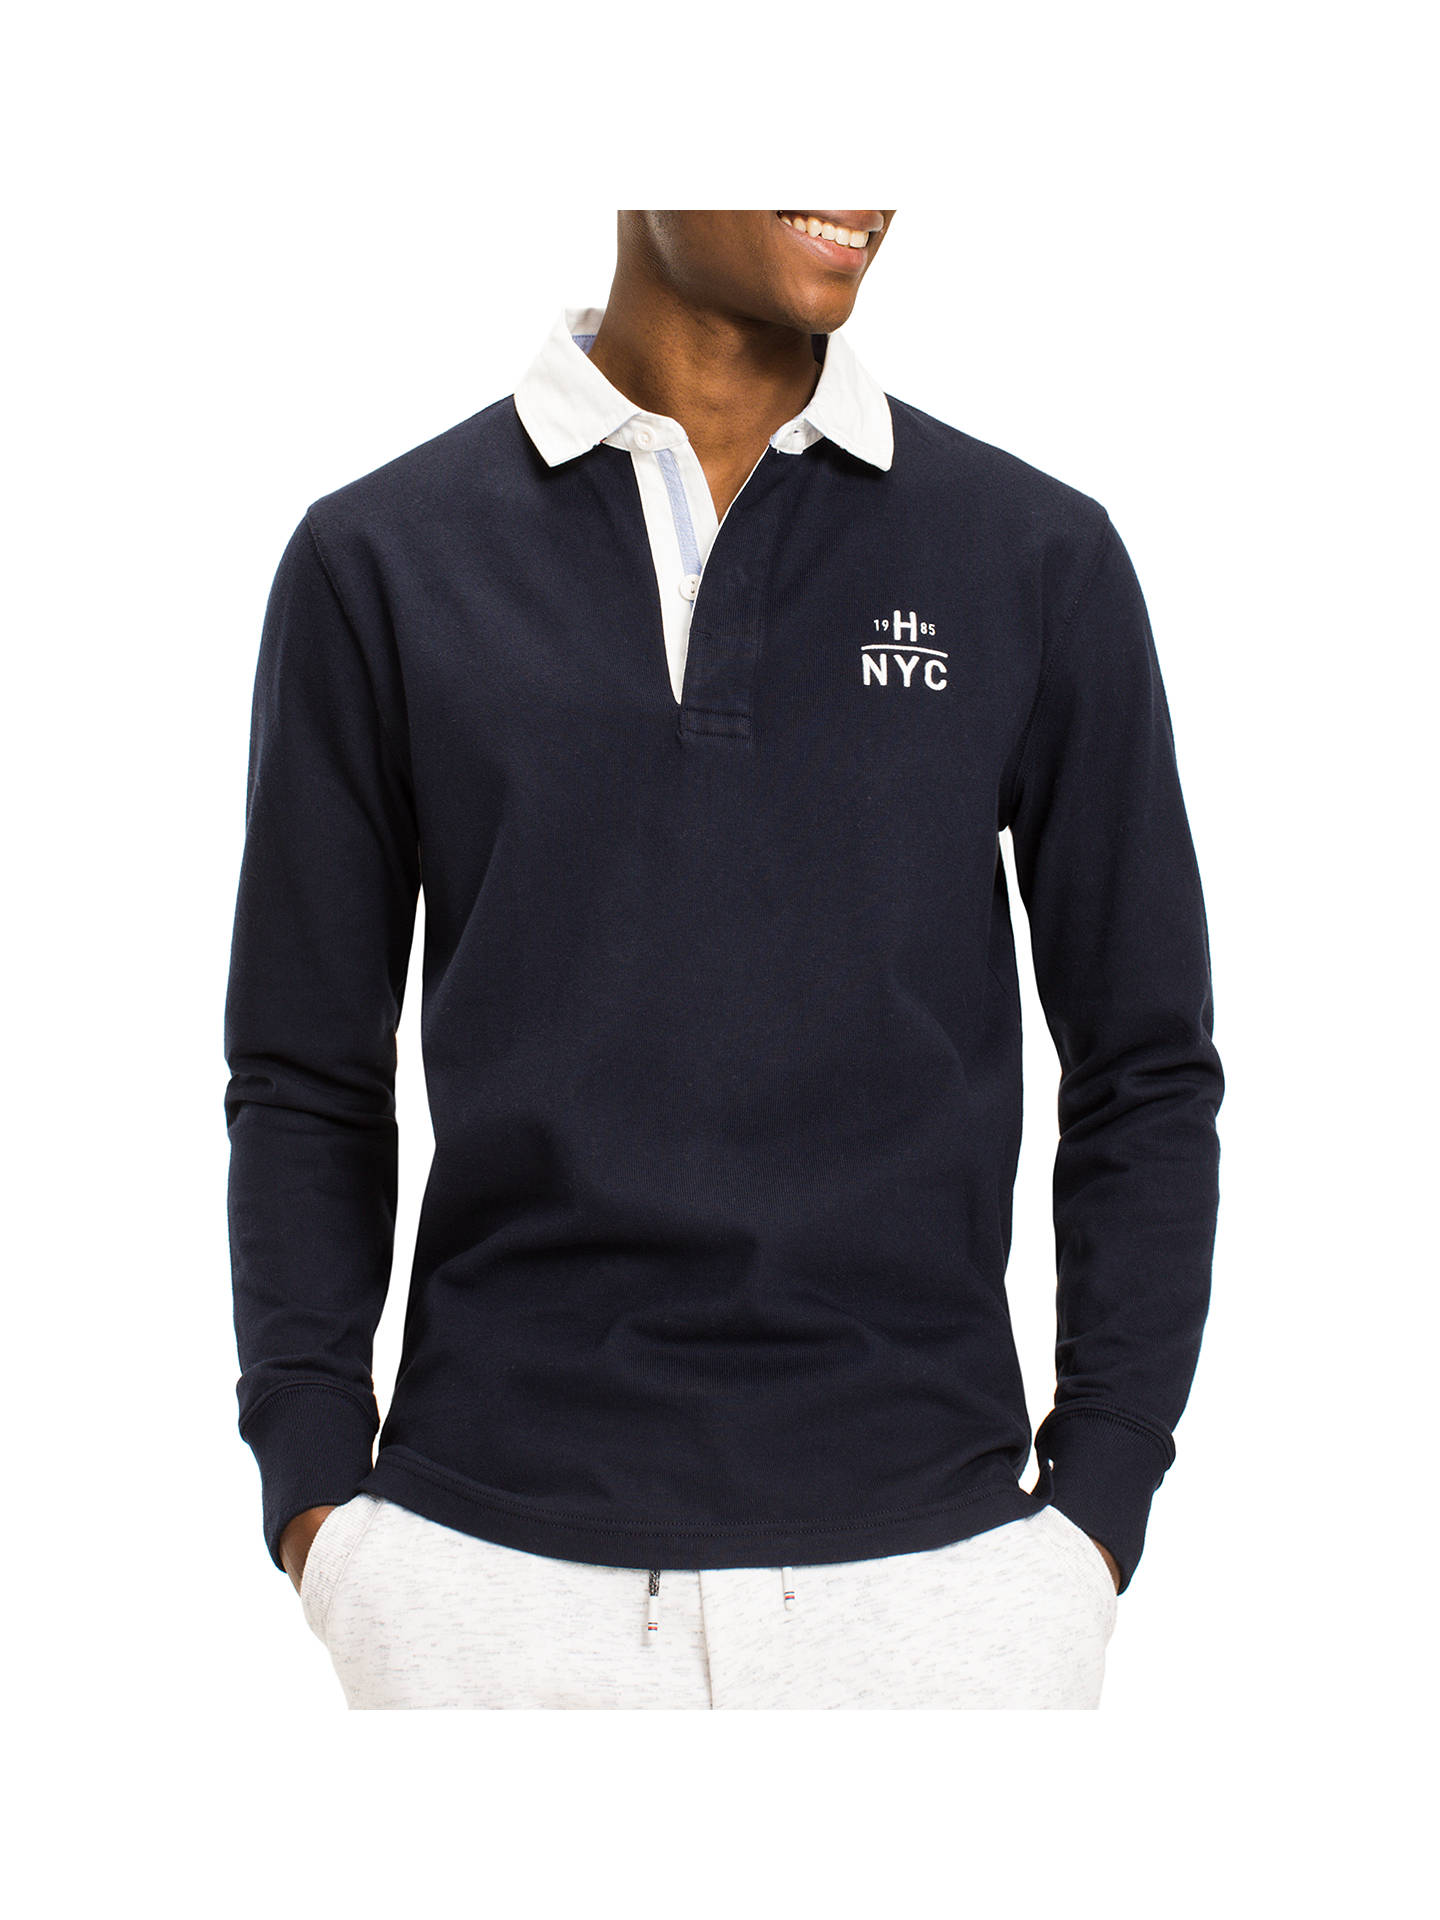 d0c6de0f Buy Tommy Hilfiger Ryan Long Sleeve Rugby Top, Navy, S Online at johnlewis.